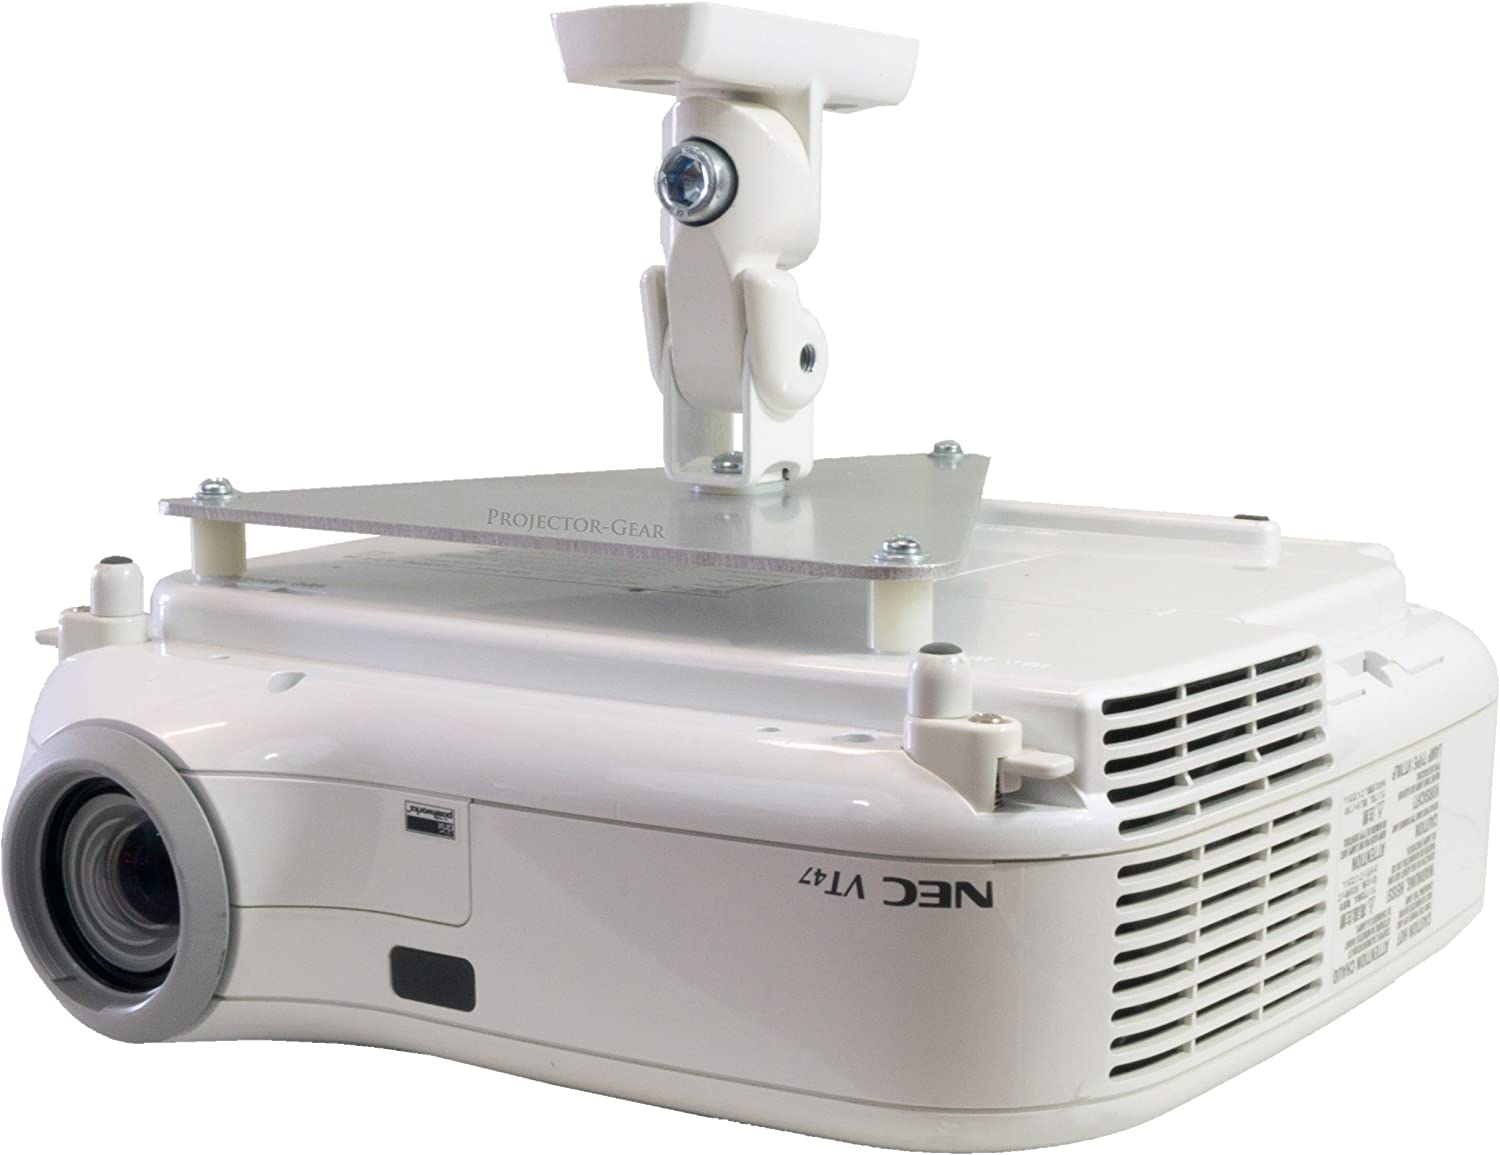 Projector-Gear Projector Ceiling Mount for VIEWSONIC Pro8530HDL Pro8510L Pro8800WUL